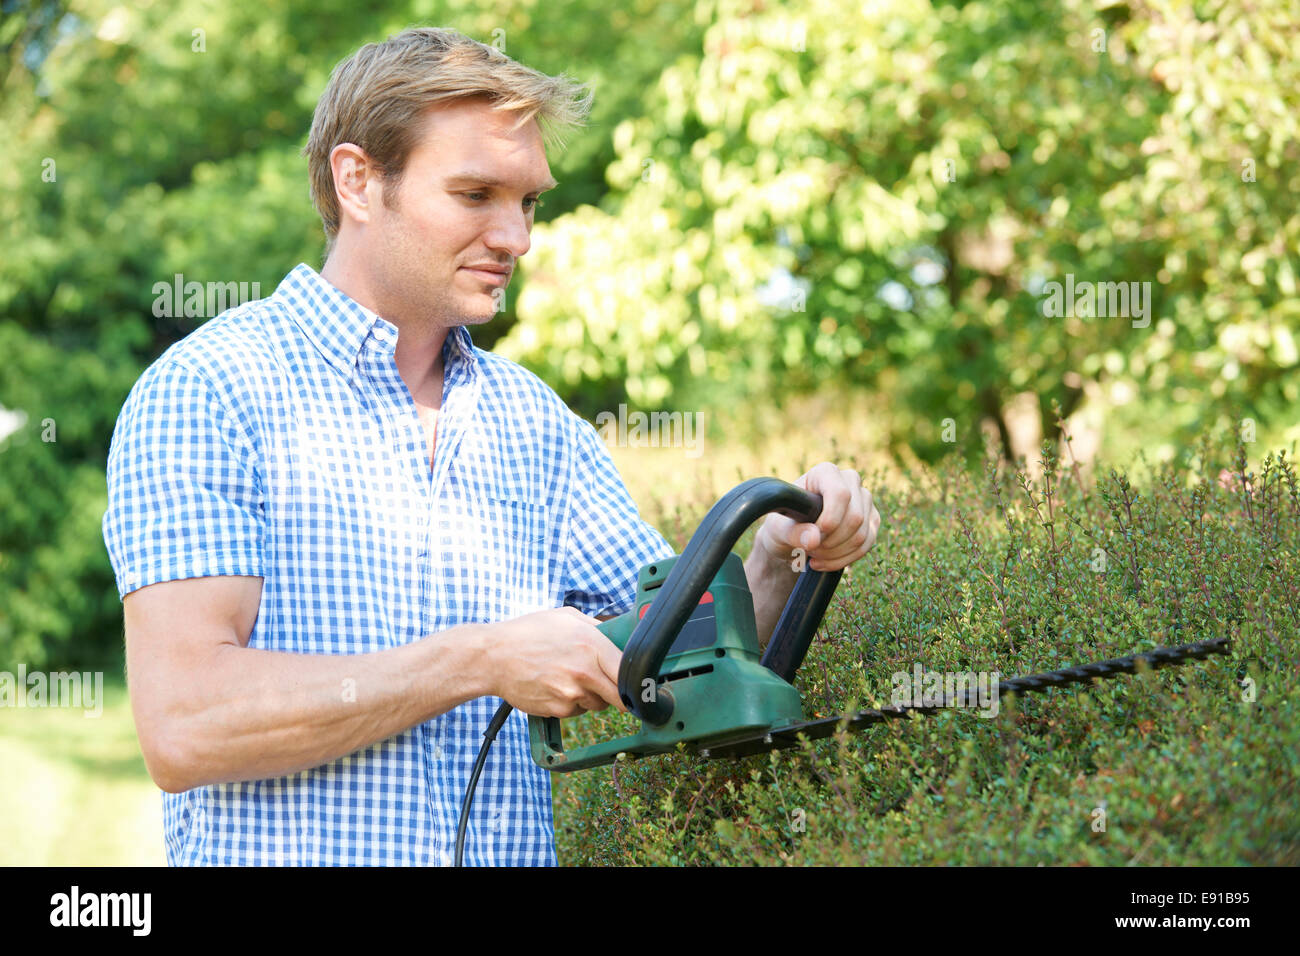 Man Cutting Garden Hedge With Electric Trimmer - Stock Image